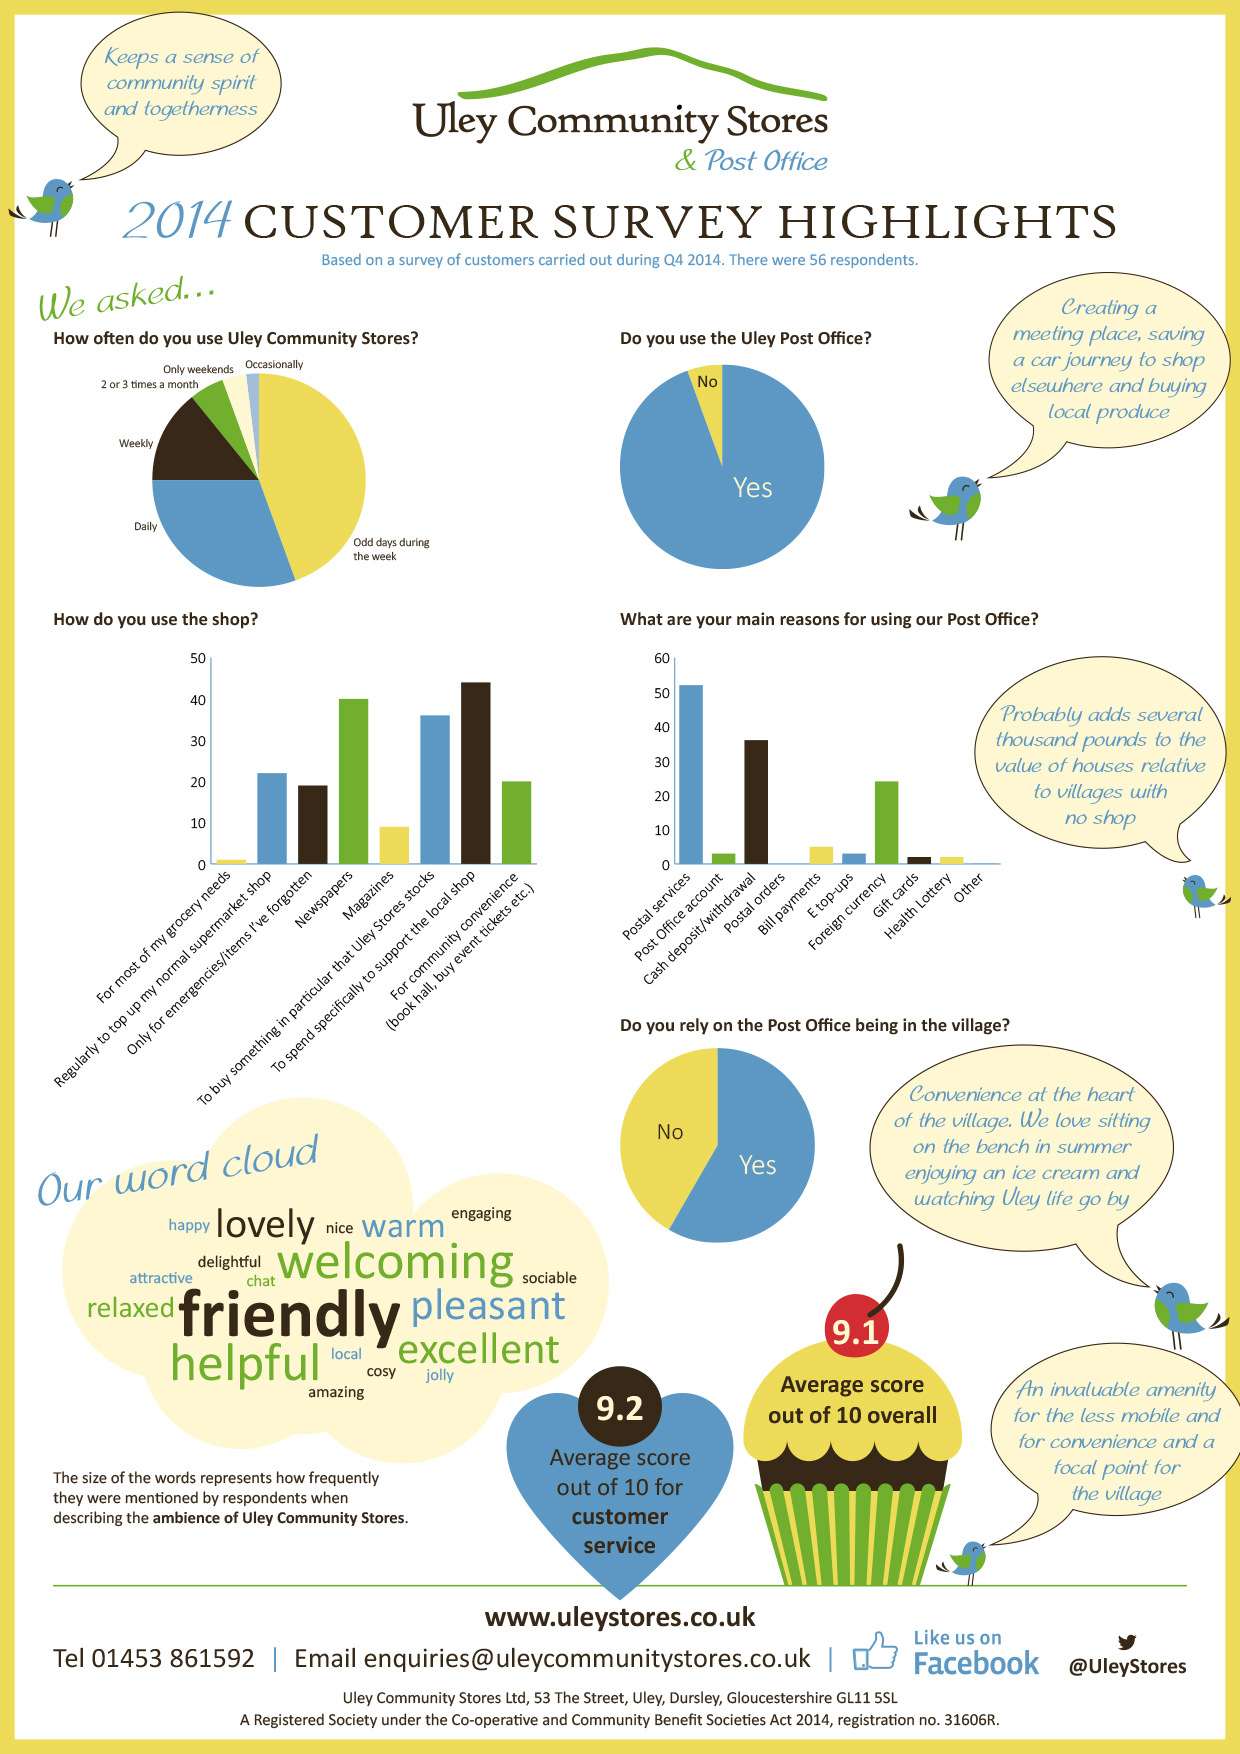 UCS-Survey-2014-Highlights-Infographic